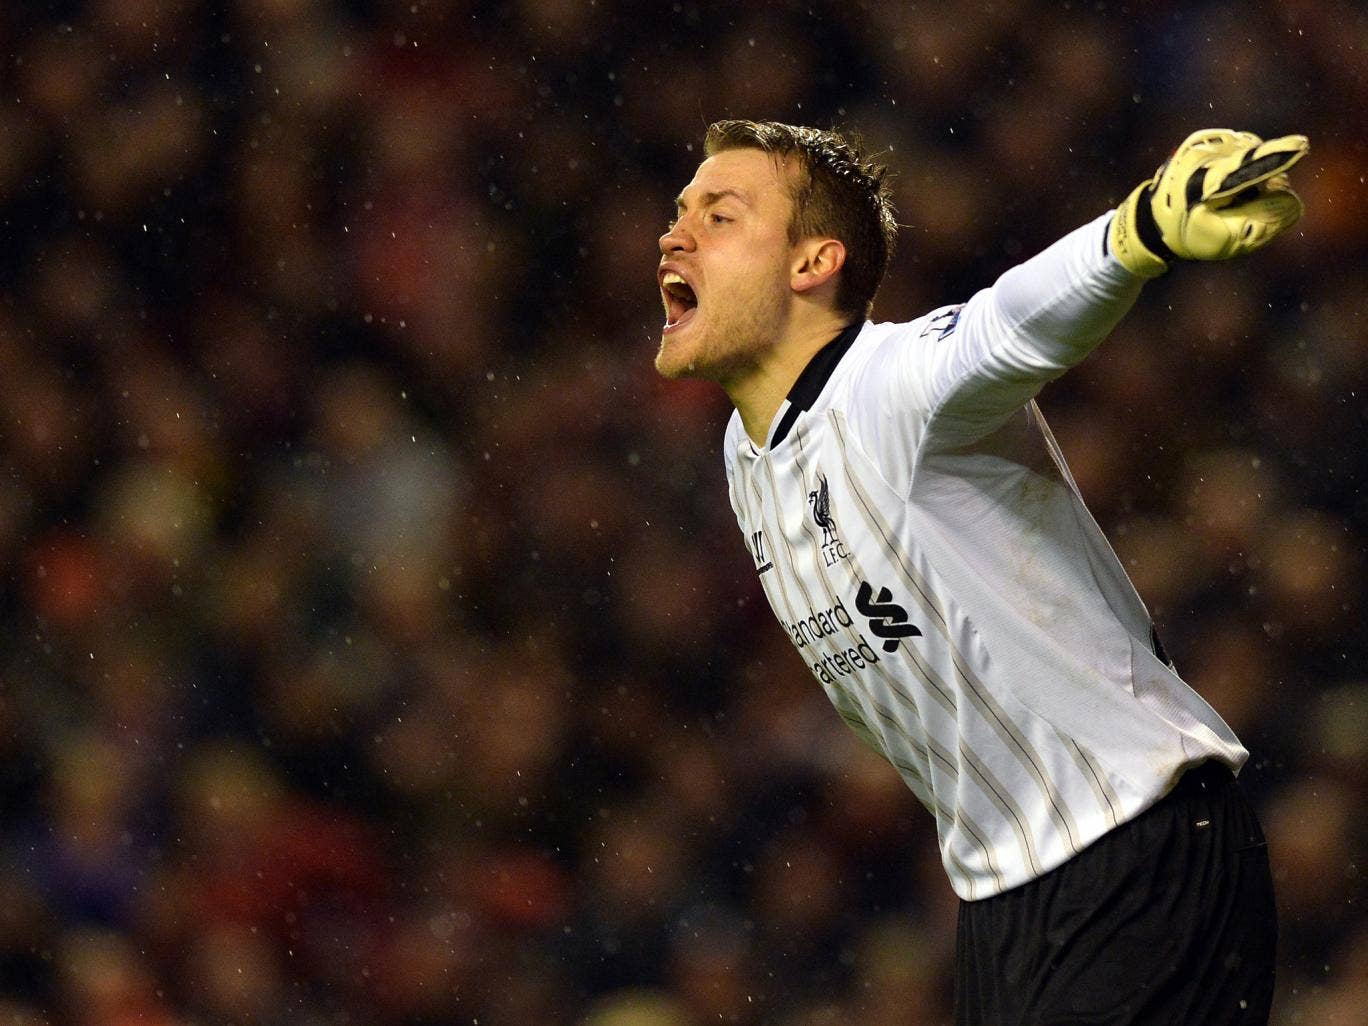 SIMON MIGNOLET: Not greatly tested but held firm when needed - 6/10.